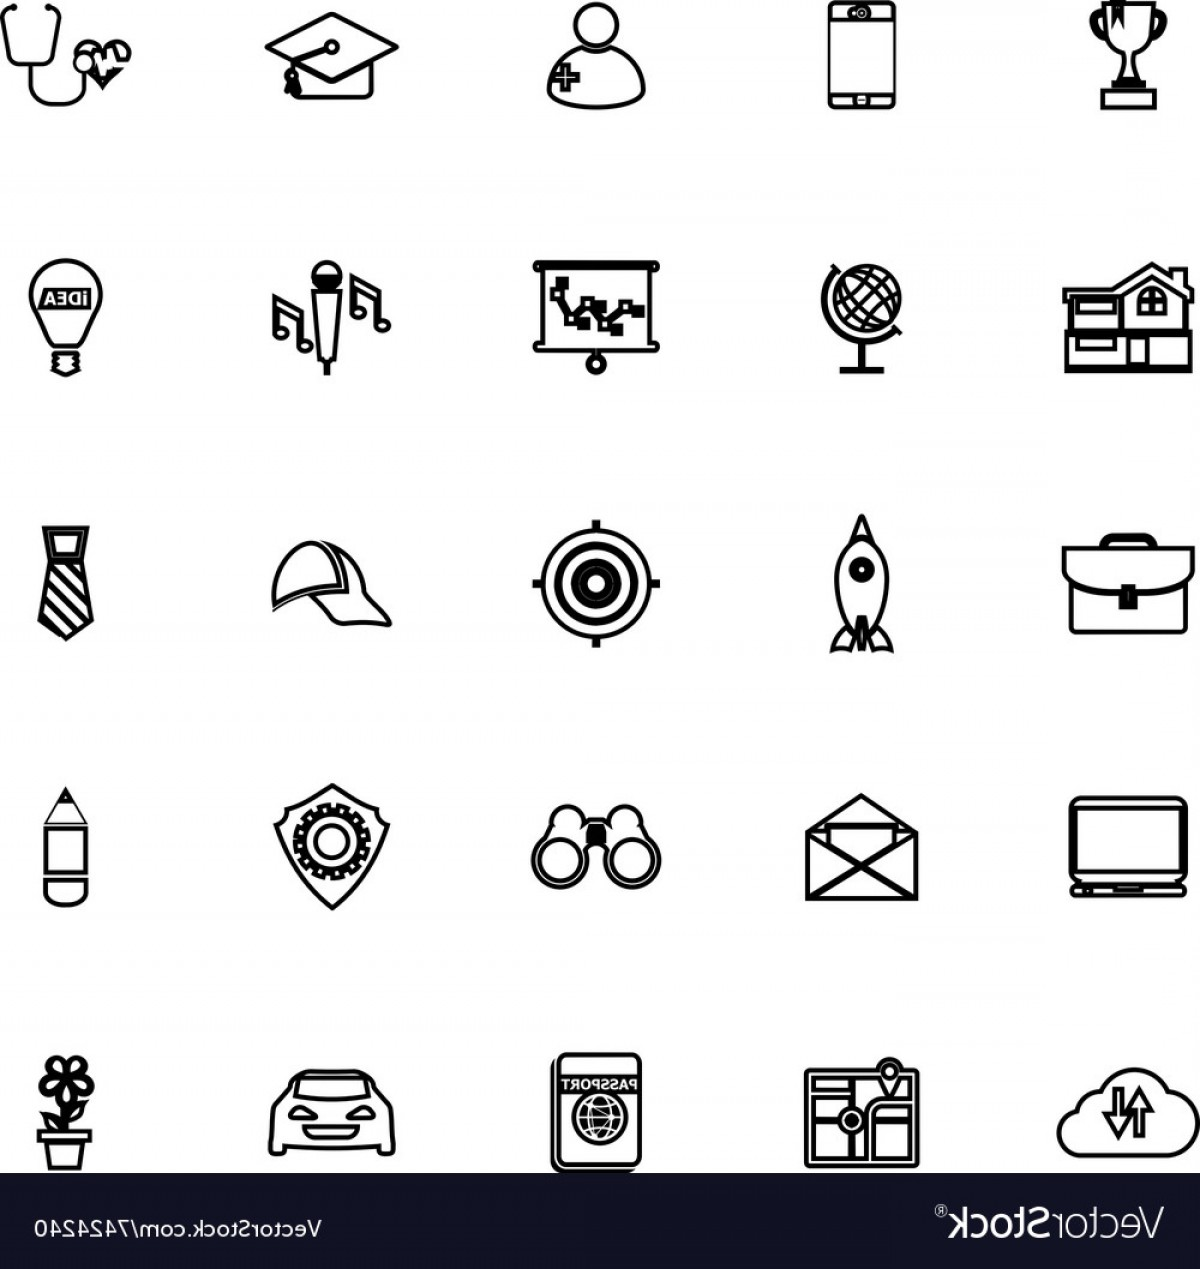 Vectors Job Description: Job Description Line Icons On White Background Vector